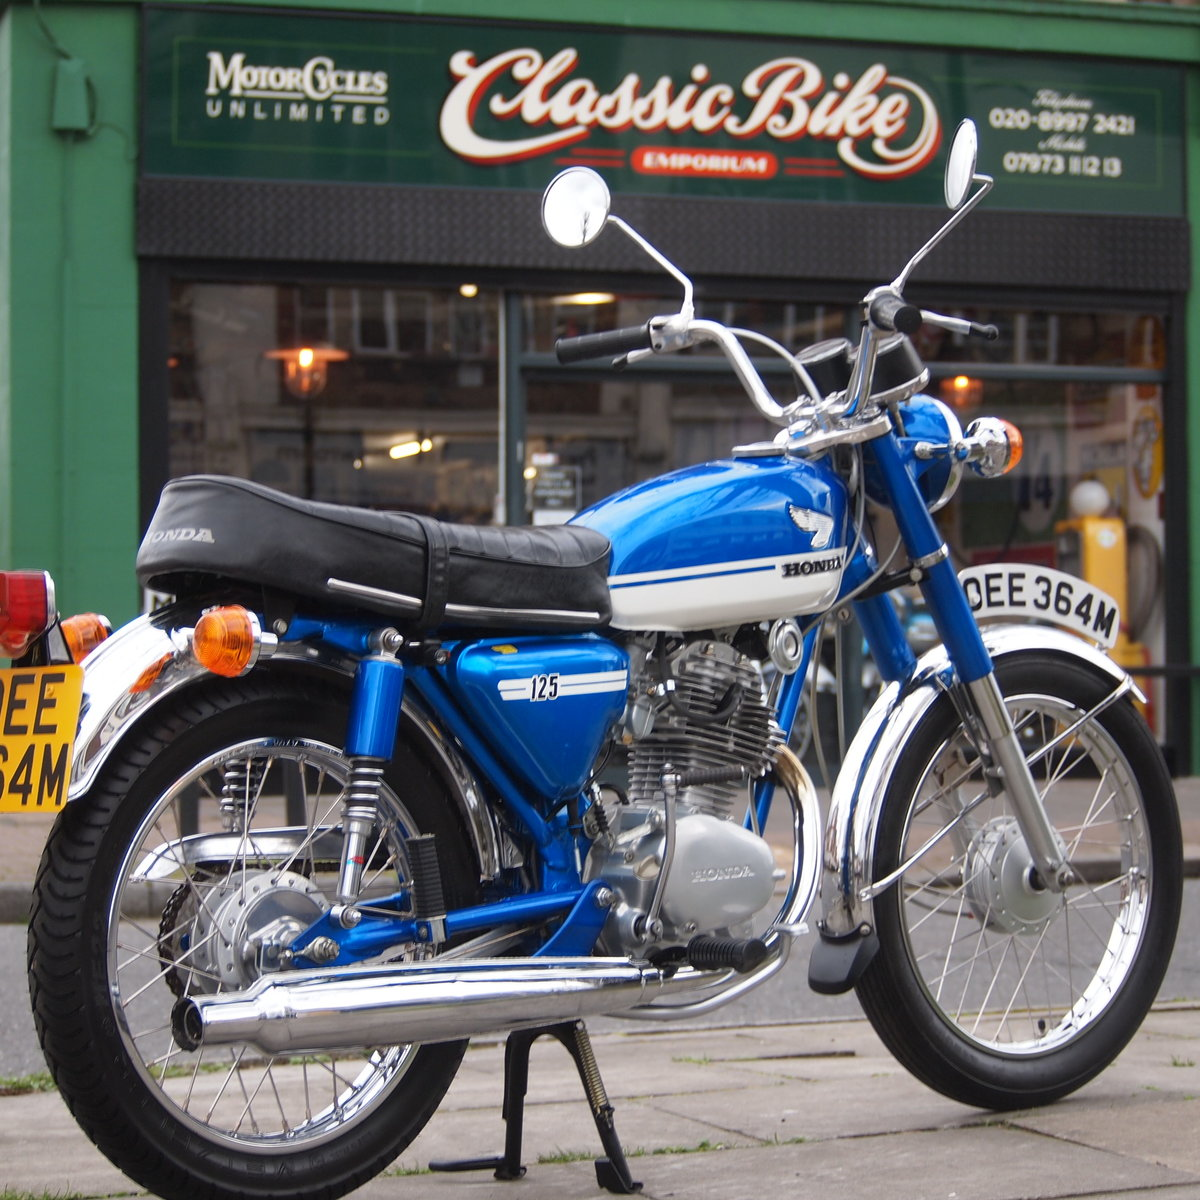 1973 Honda CB125 S UK Bike, RESERVED FOR JOE. SOLD (picture 6 of 6)